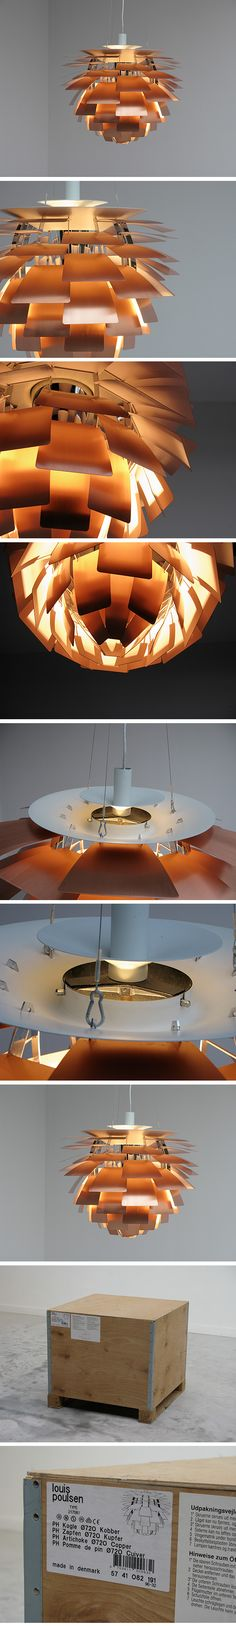 Poul Henningsen for Louis Poulsen; PH Artichocke pendant lamp, copper, chromed and painted metal, Denmark, 1958 Beautiful Interior Design, Beautiful Interiors, Unique Lighting, Lighting Design, Deco Luminaire, Lamp Light, Light Bulb, Shine The Light, Lobby Interior